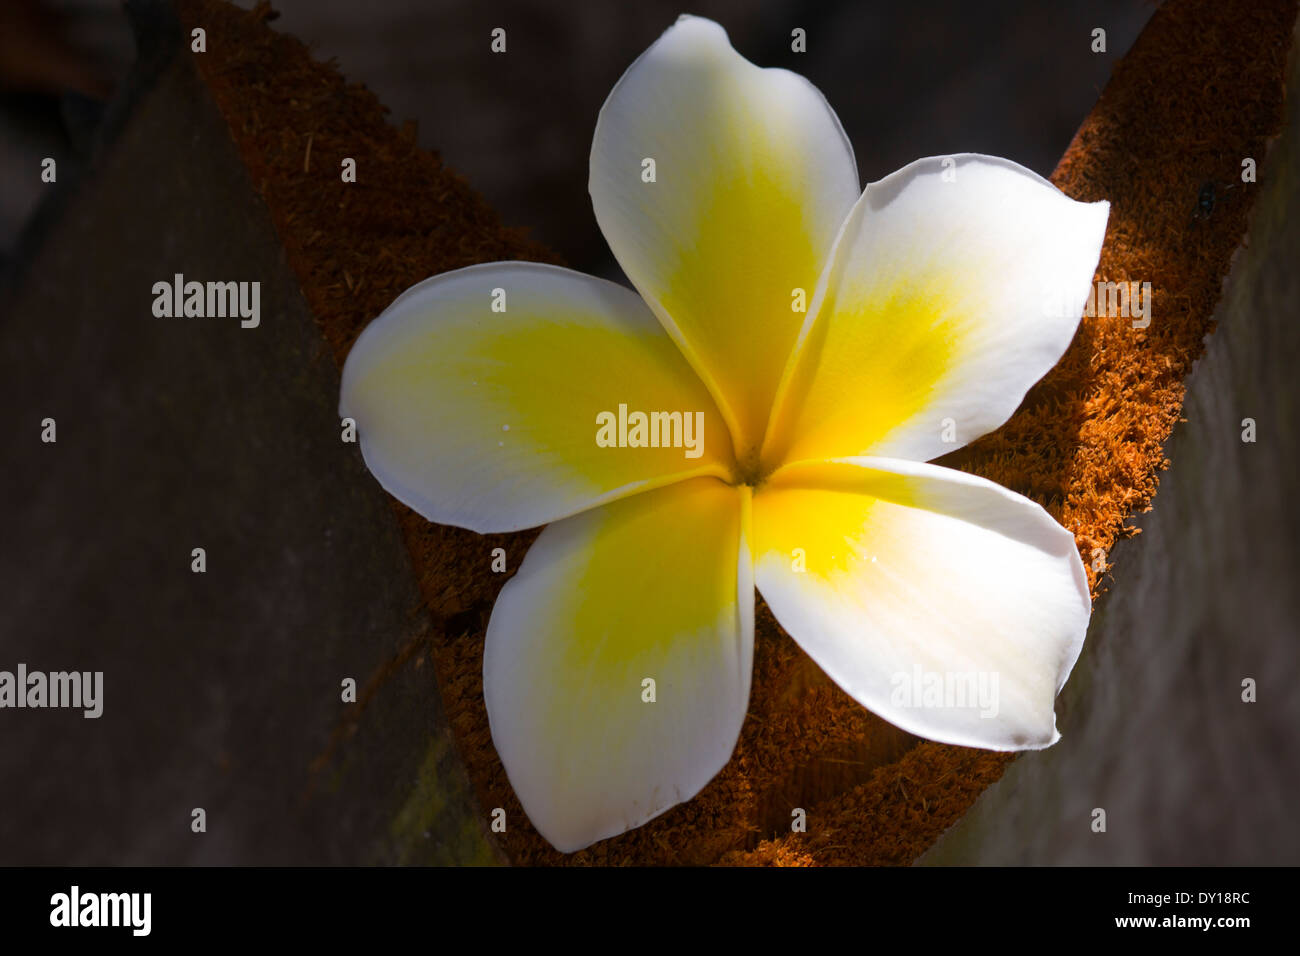 White yellow tropical flowers stock photos white yellow tropical tropical yellow and white flowers frangipani plumeria stock image mightylinksfo